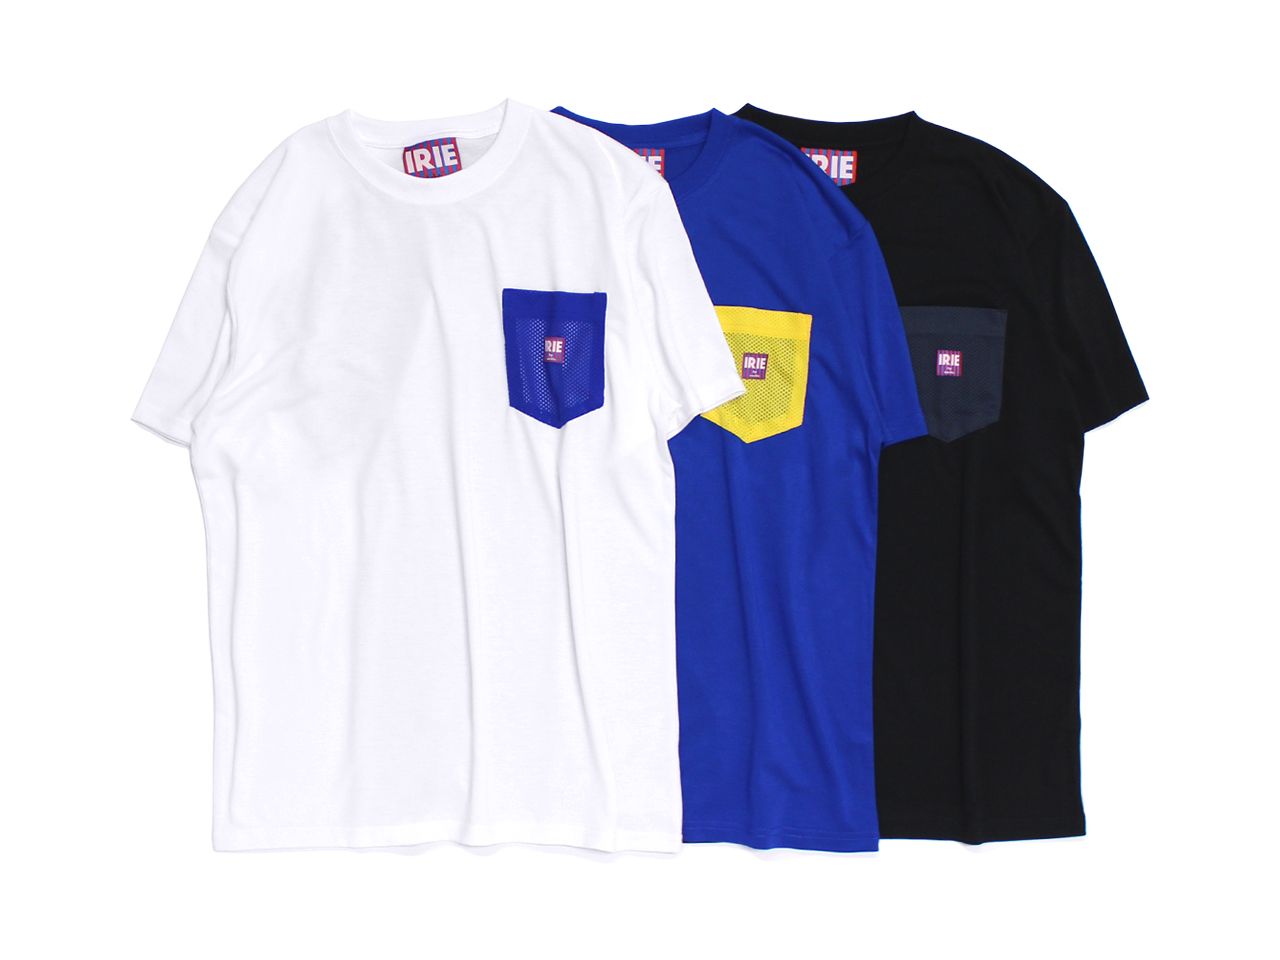 【20% OFF】DRY MESH POCKET TEE - IRIE by irielife